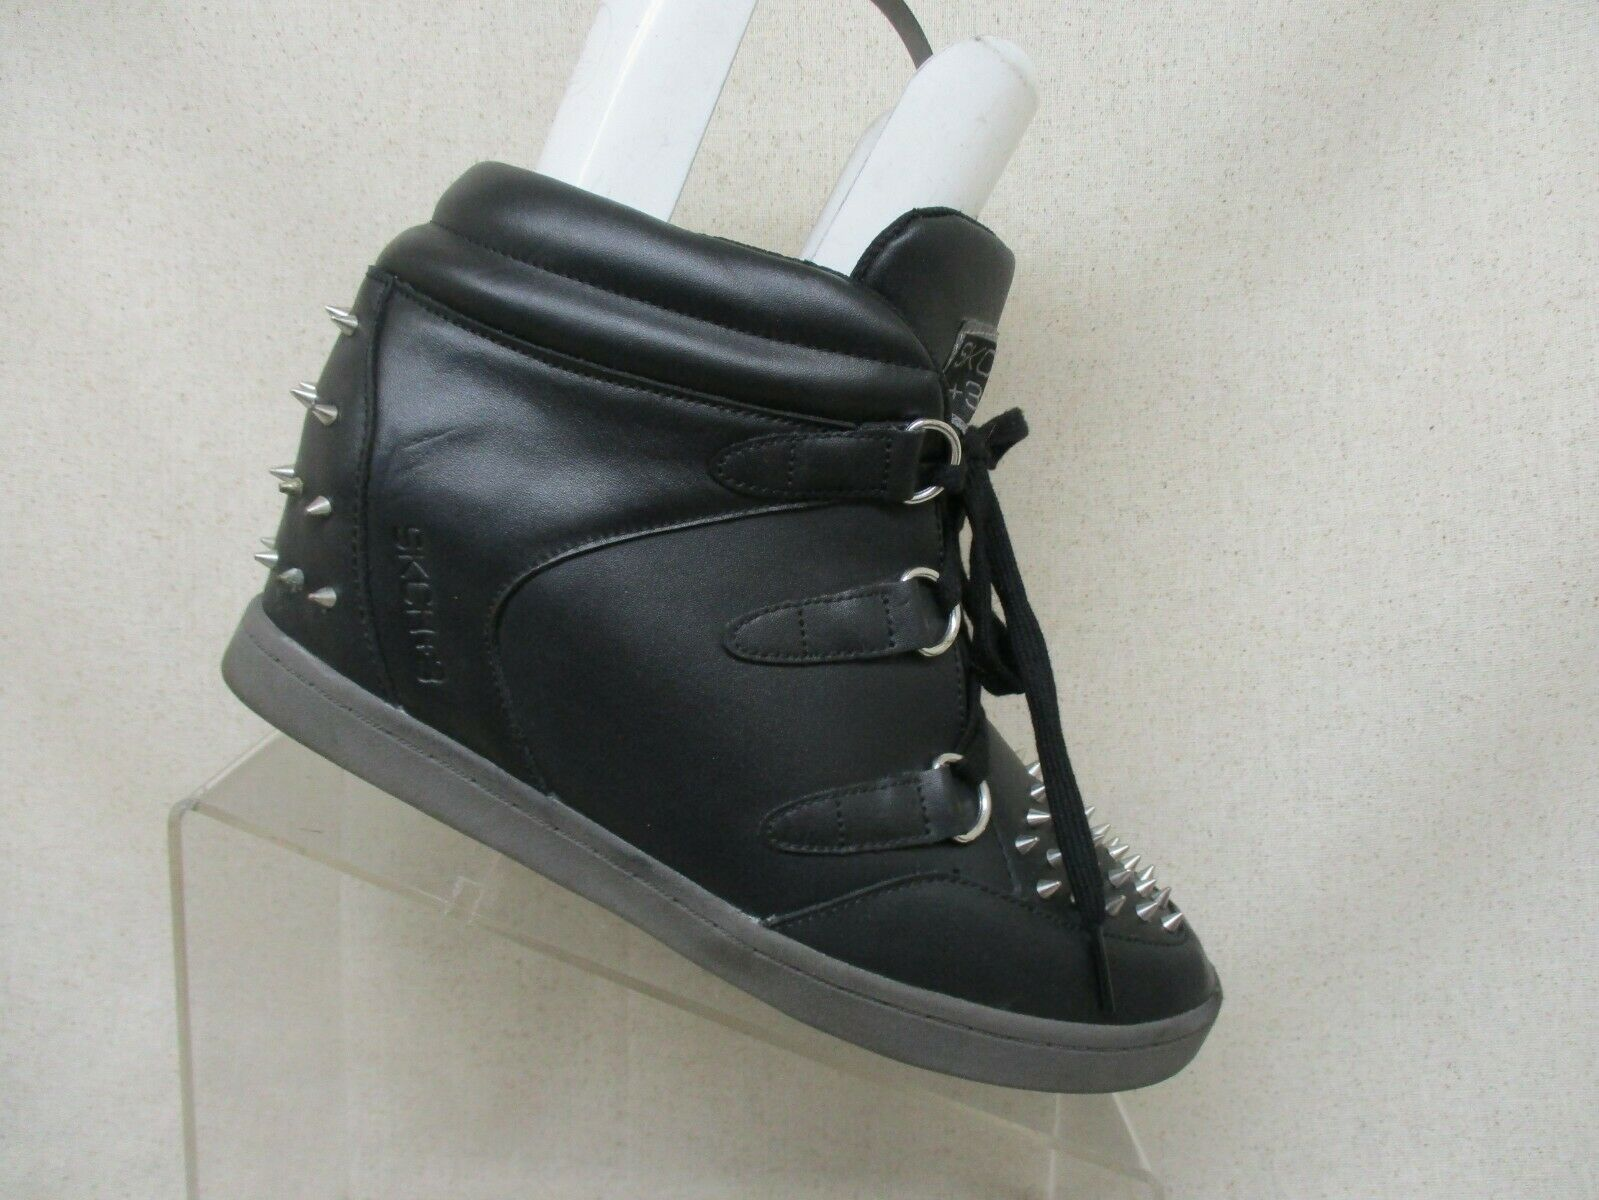 Skechers Black Leather Studded Spiky Spiky Spiky Lace Up Hidden Wedge Ankle Boots Size 9.5 M d4ea4e